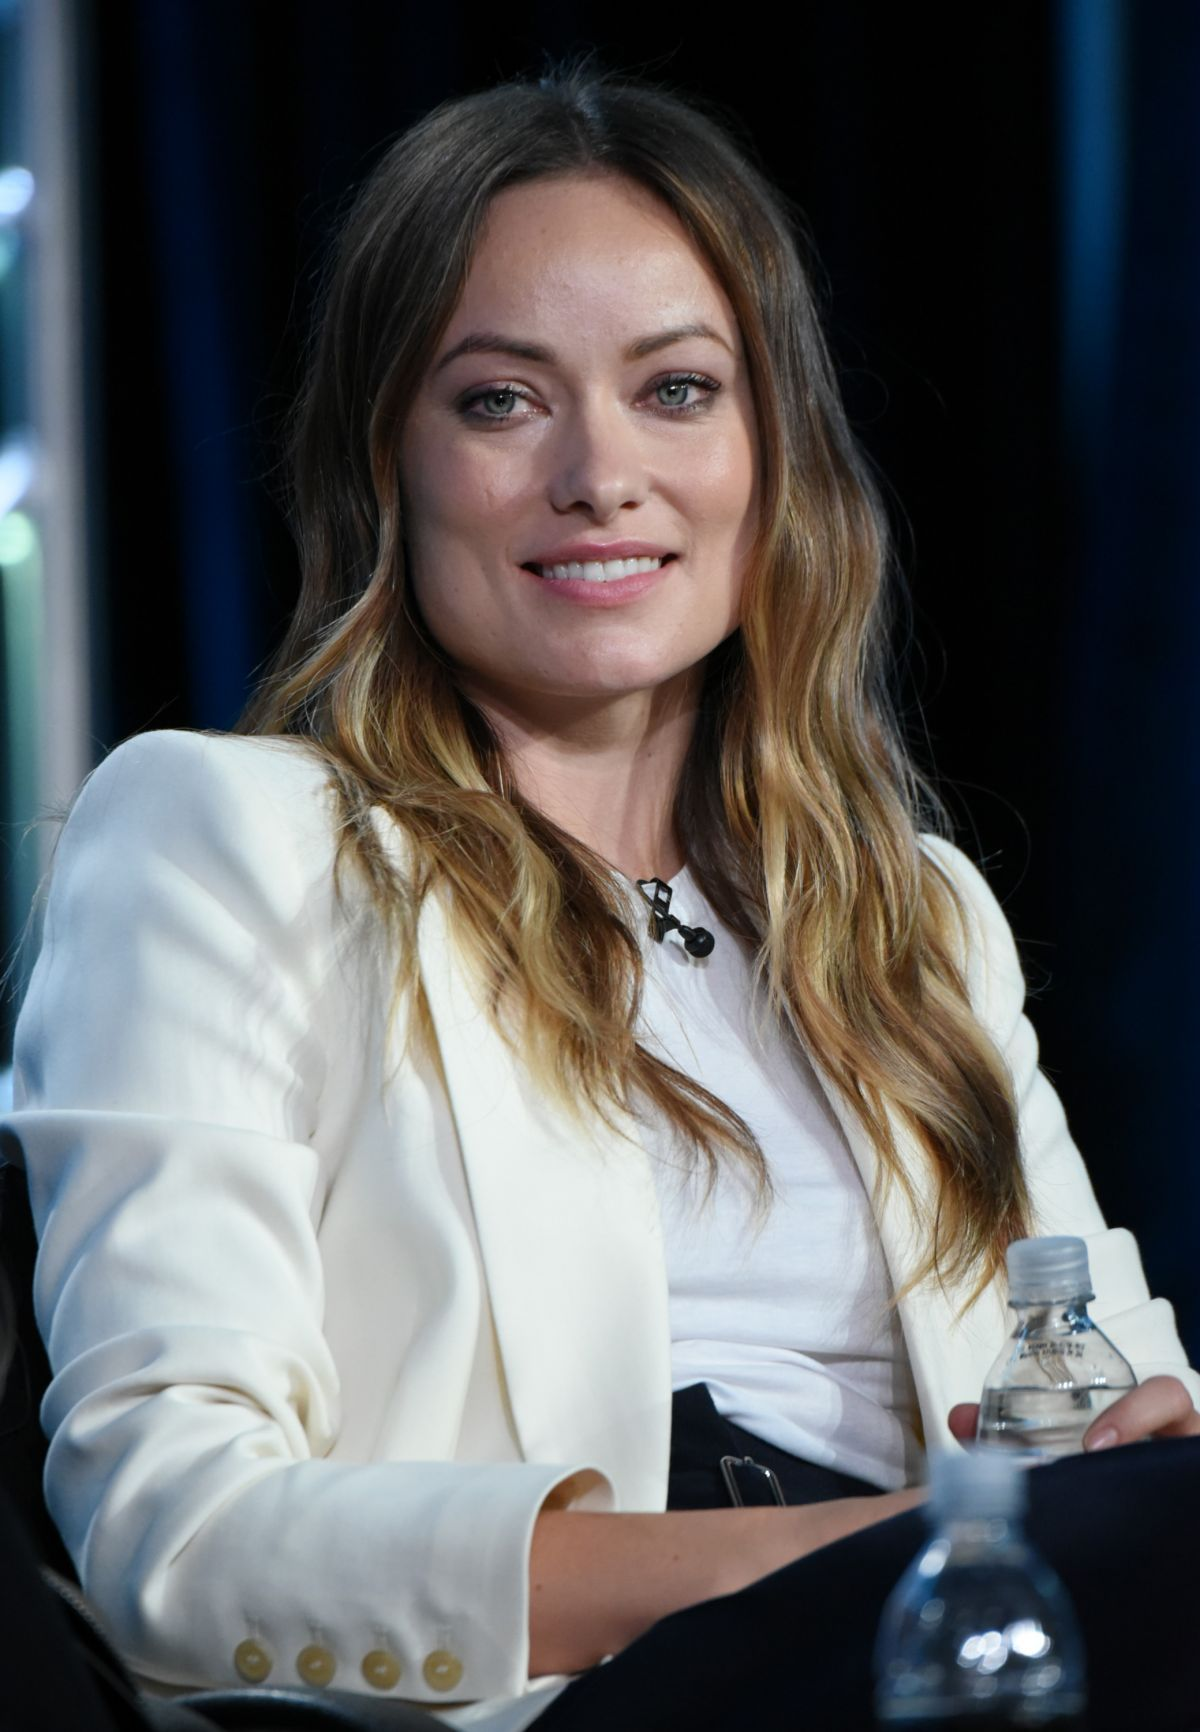 OLIVIA WILDE at HBO 2016 Winter TCA Tour in Pasadena 01/07/2016